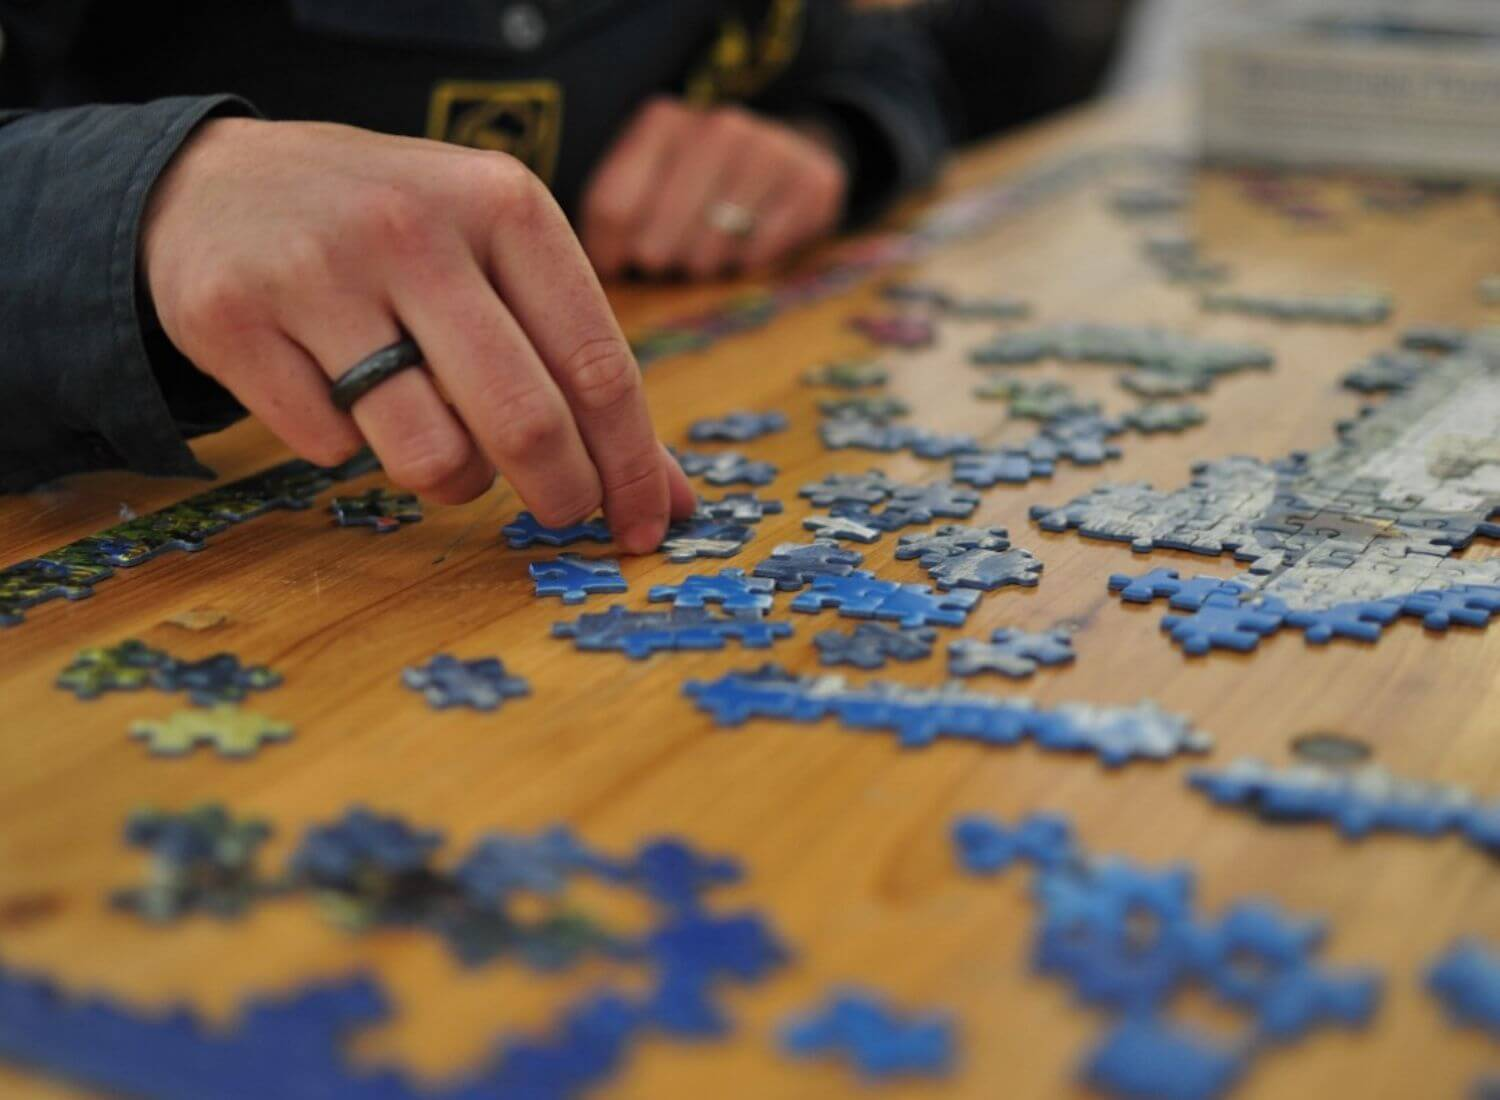 What Actually Happens When You Do Puzzles? (5 Outcomes)